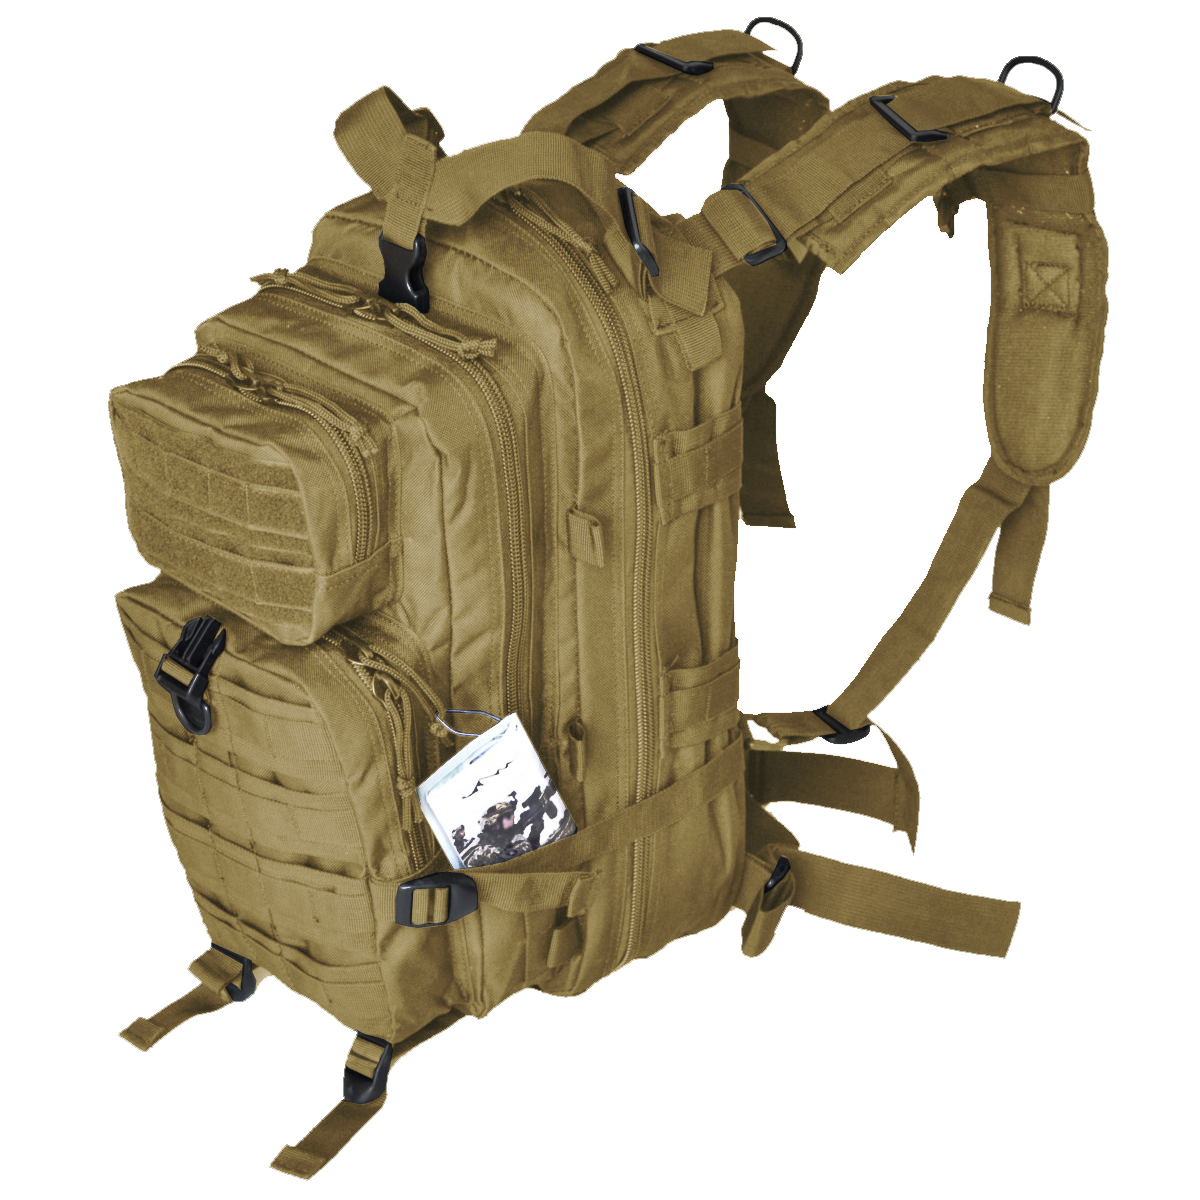 Every Day Carry Day Pack Backpack EDC MOLLE Military ...